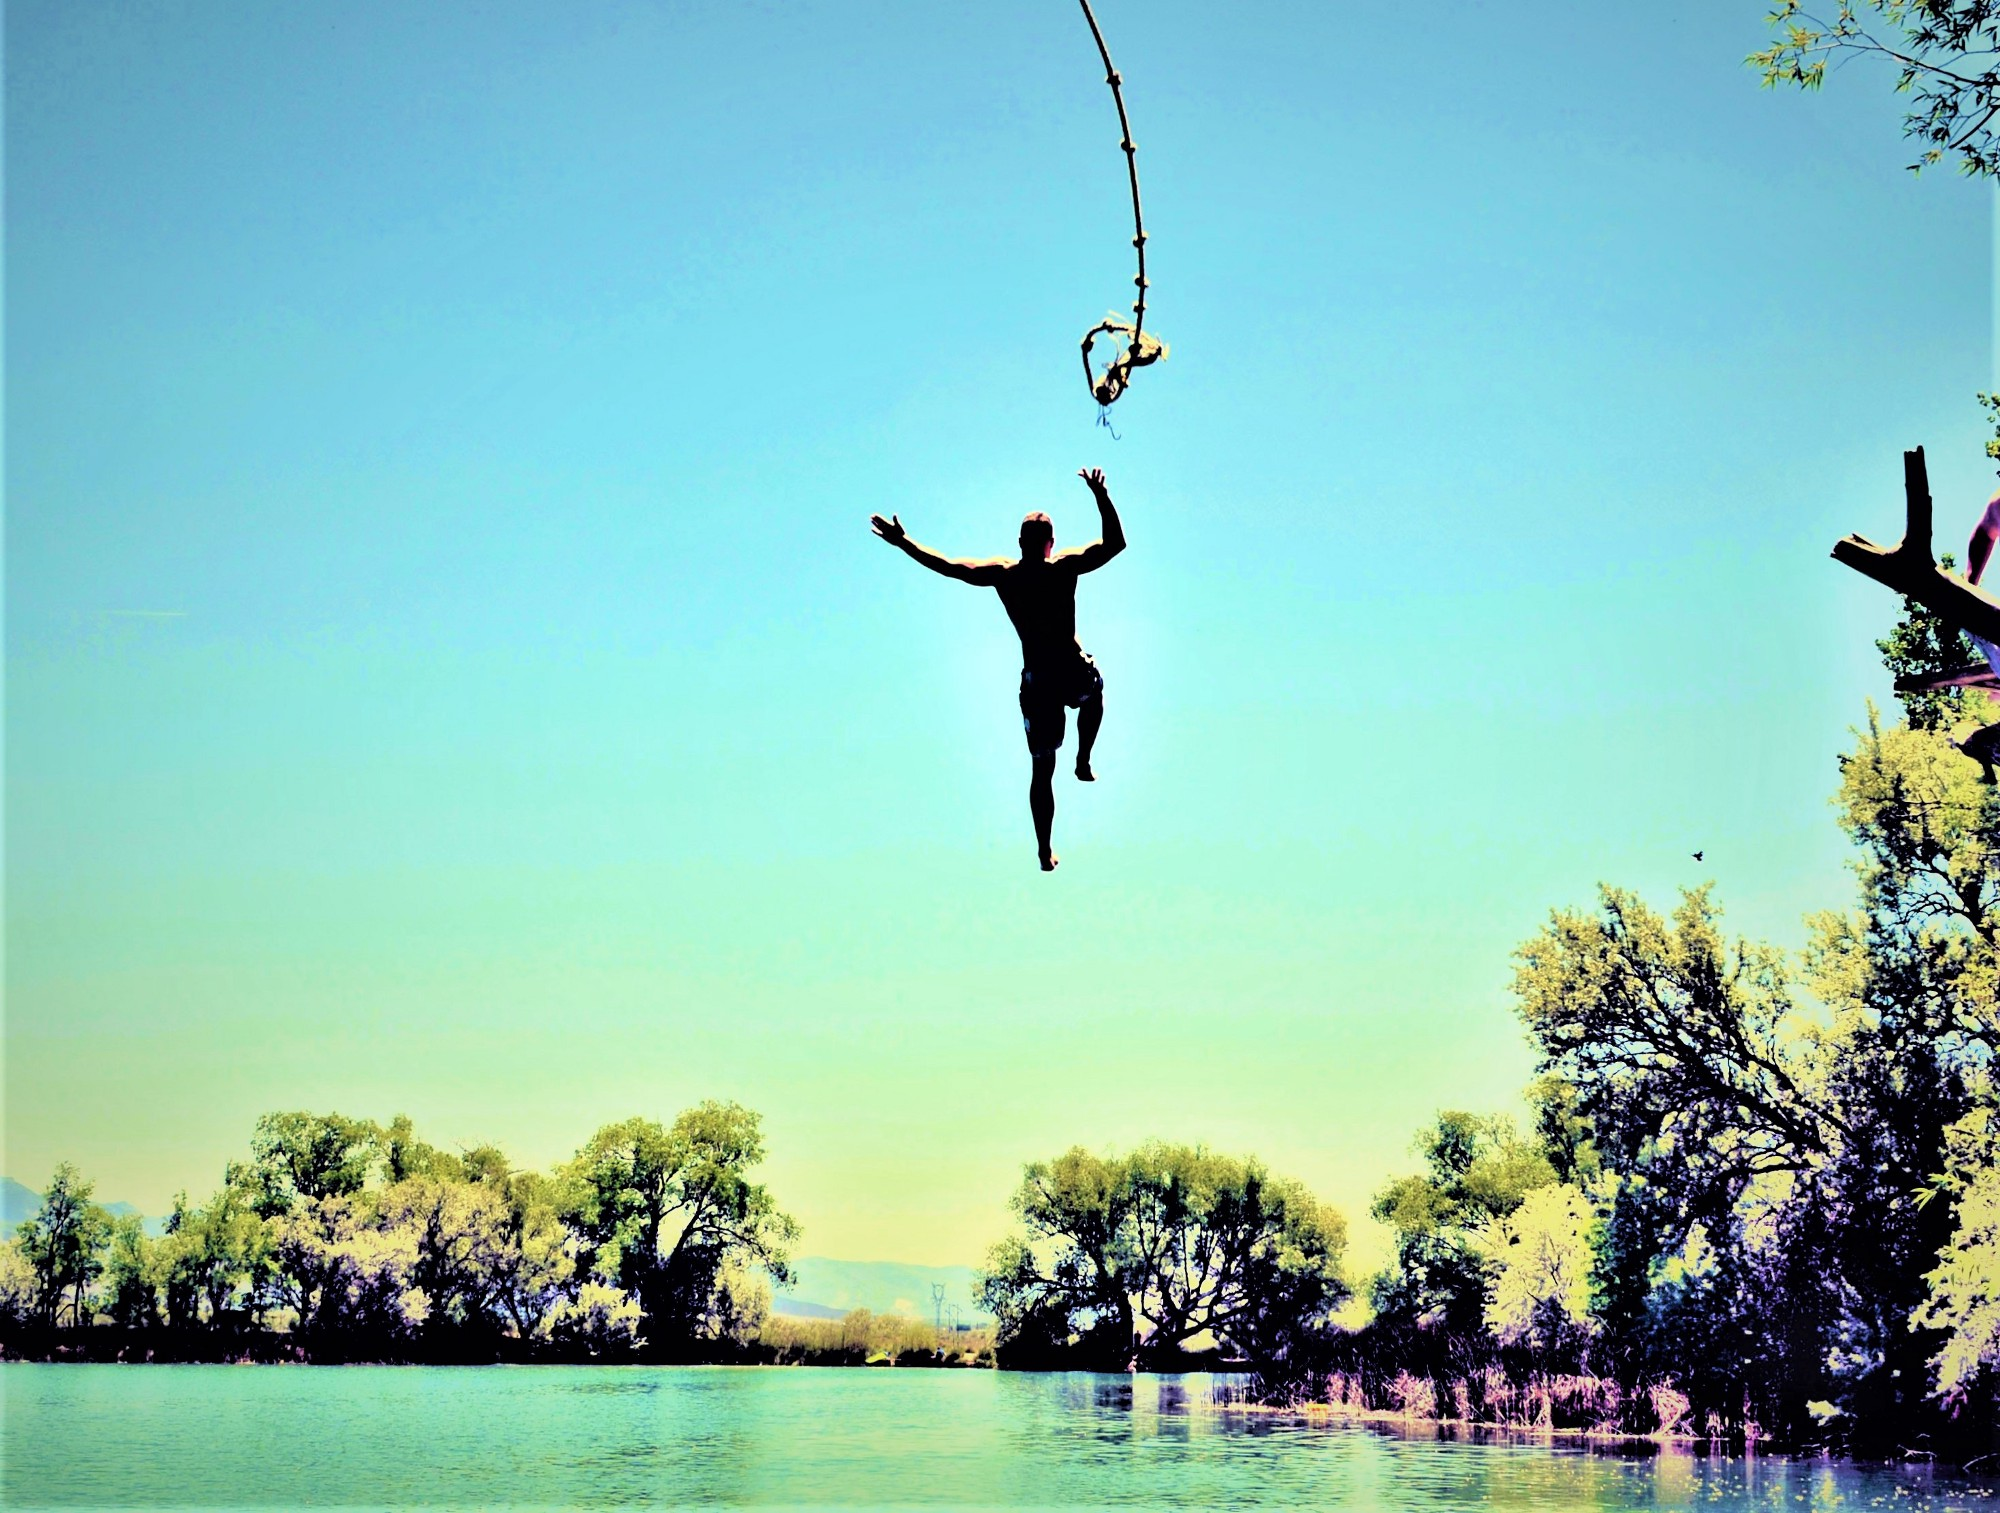 man in mid-air letting go of rope over calm lake